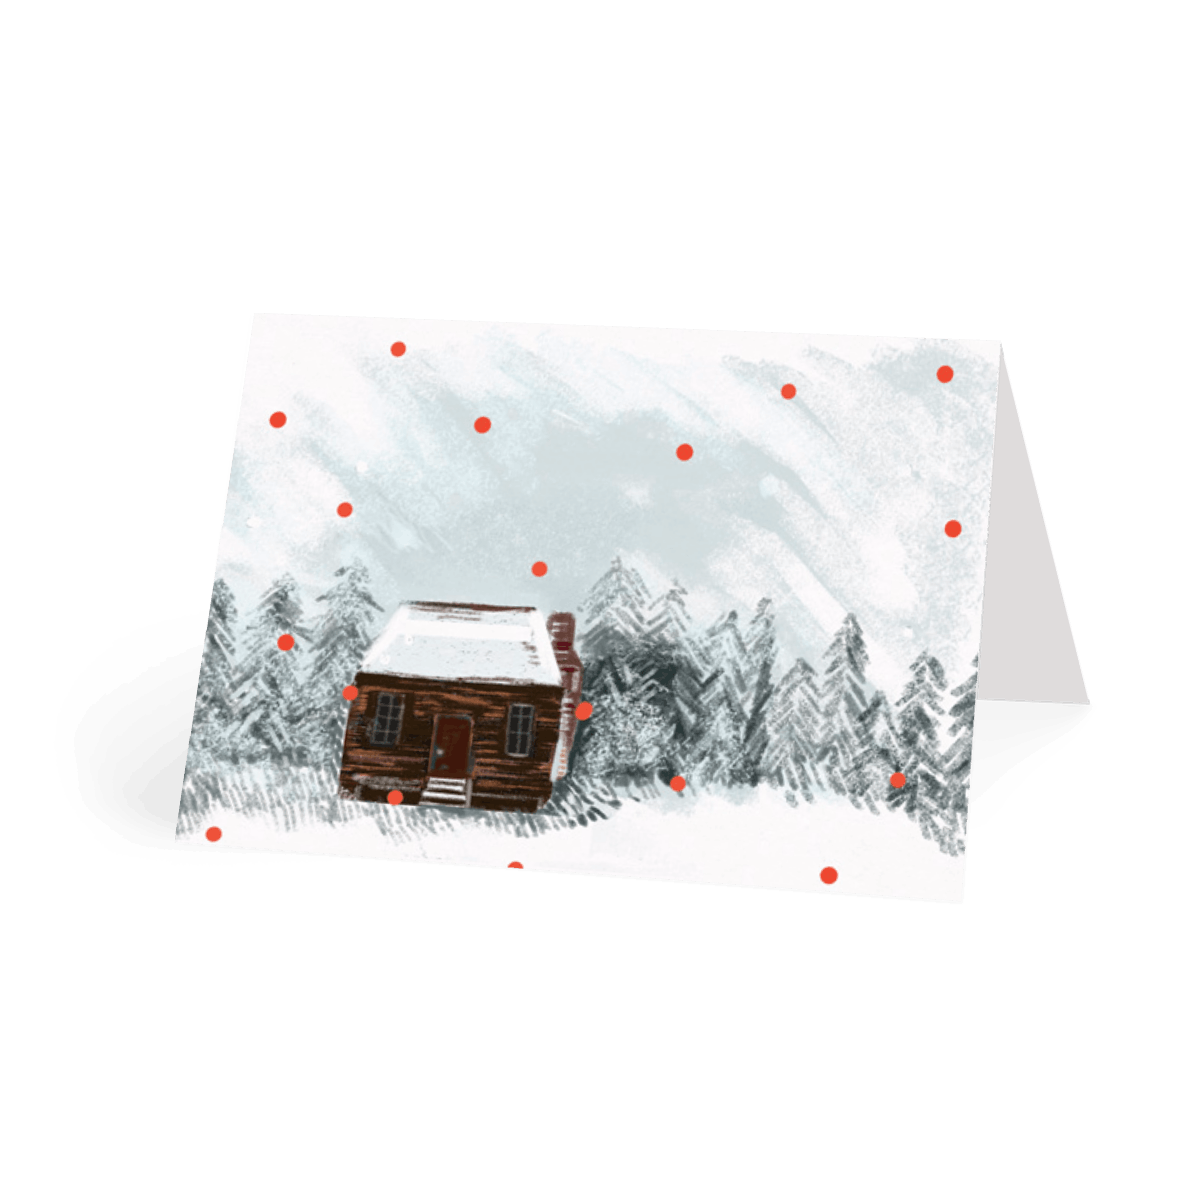 Https%3a%2f%2fwww.papier.com%2fproduct image%2f29293%2f14%2fhappy holidays winter cabin 7358 avant 1510741025.png?ixlib=rb 1.1